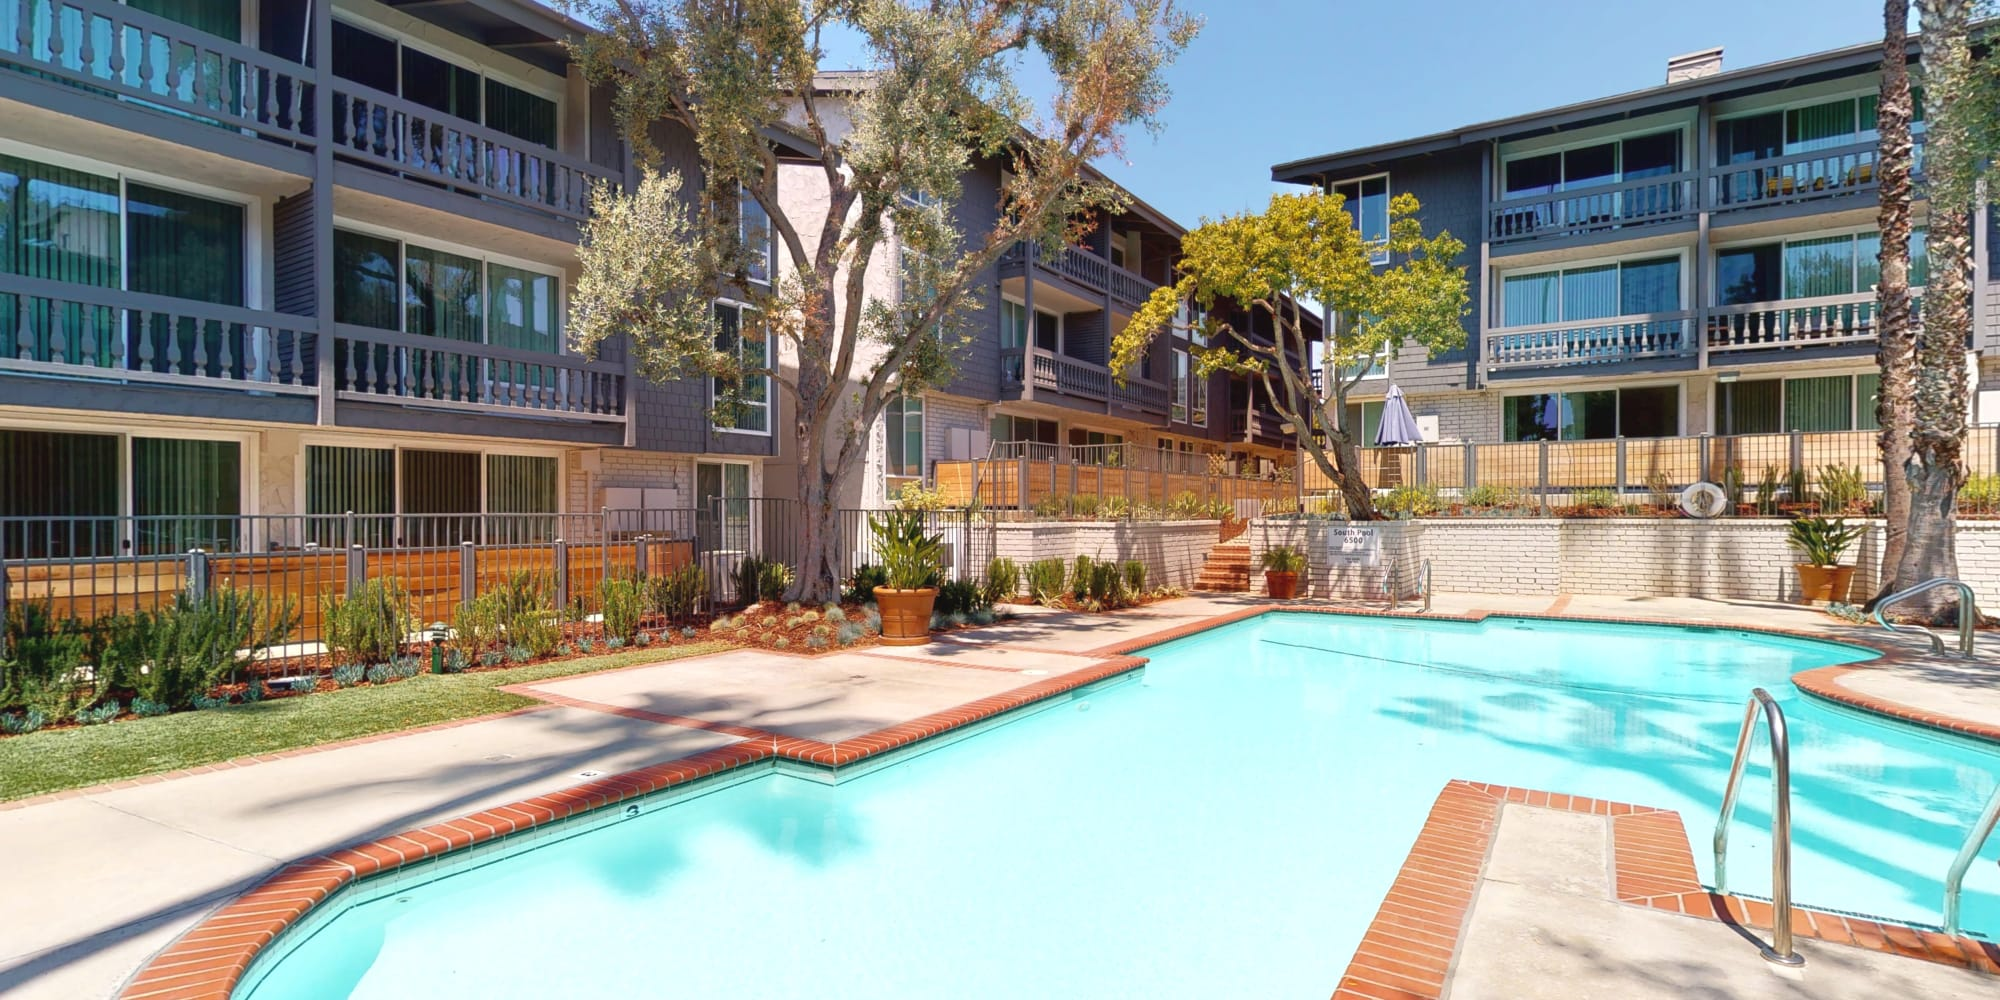 Renovated apartment community with mature trees and sparkling pool at The Meadows in Culver City, California